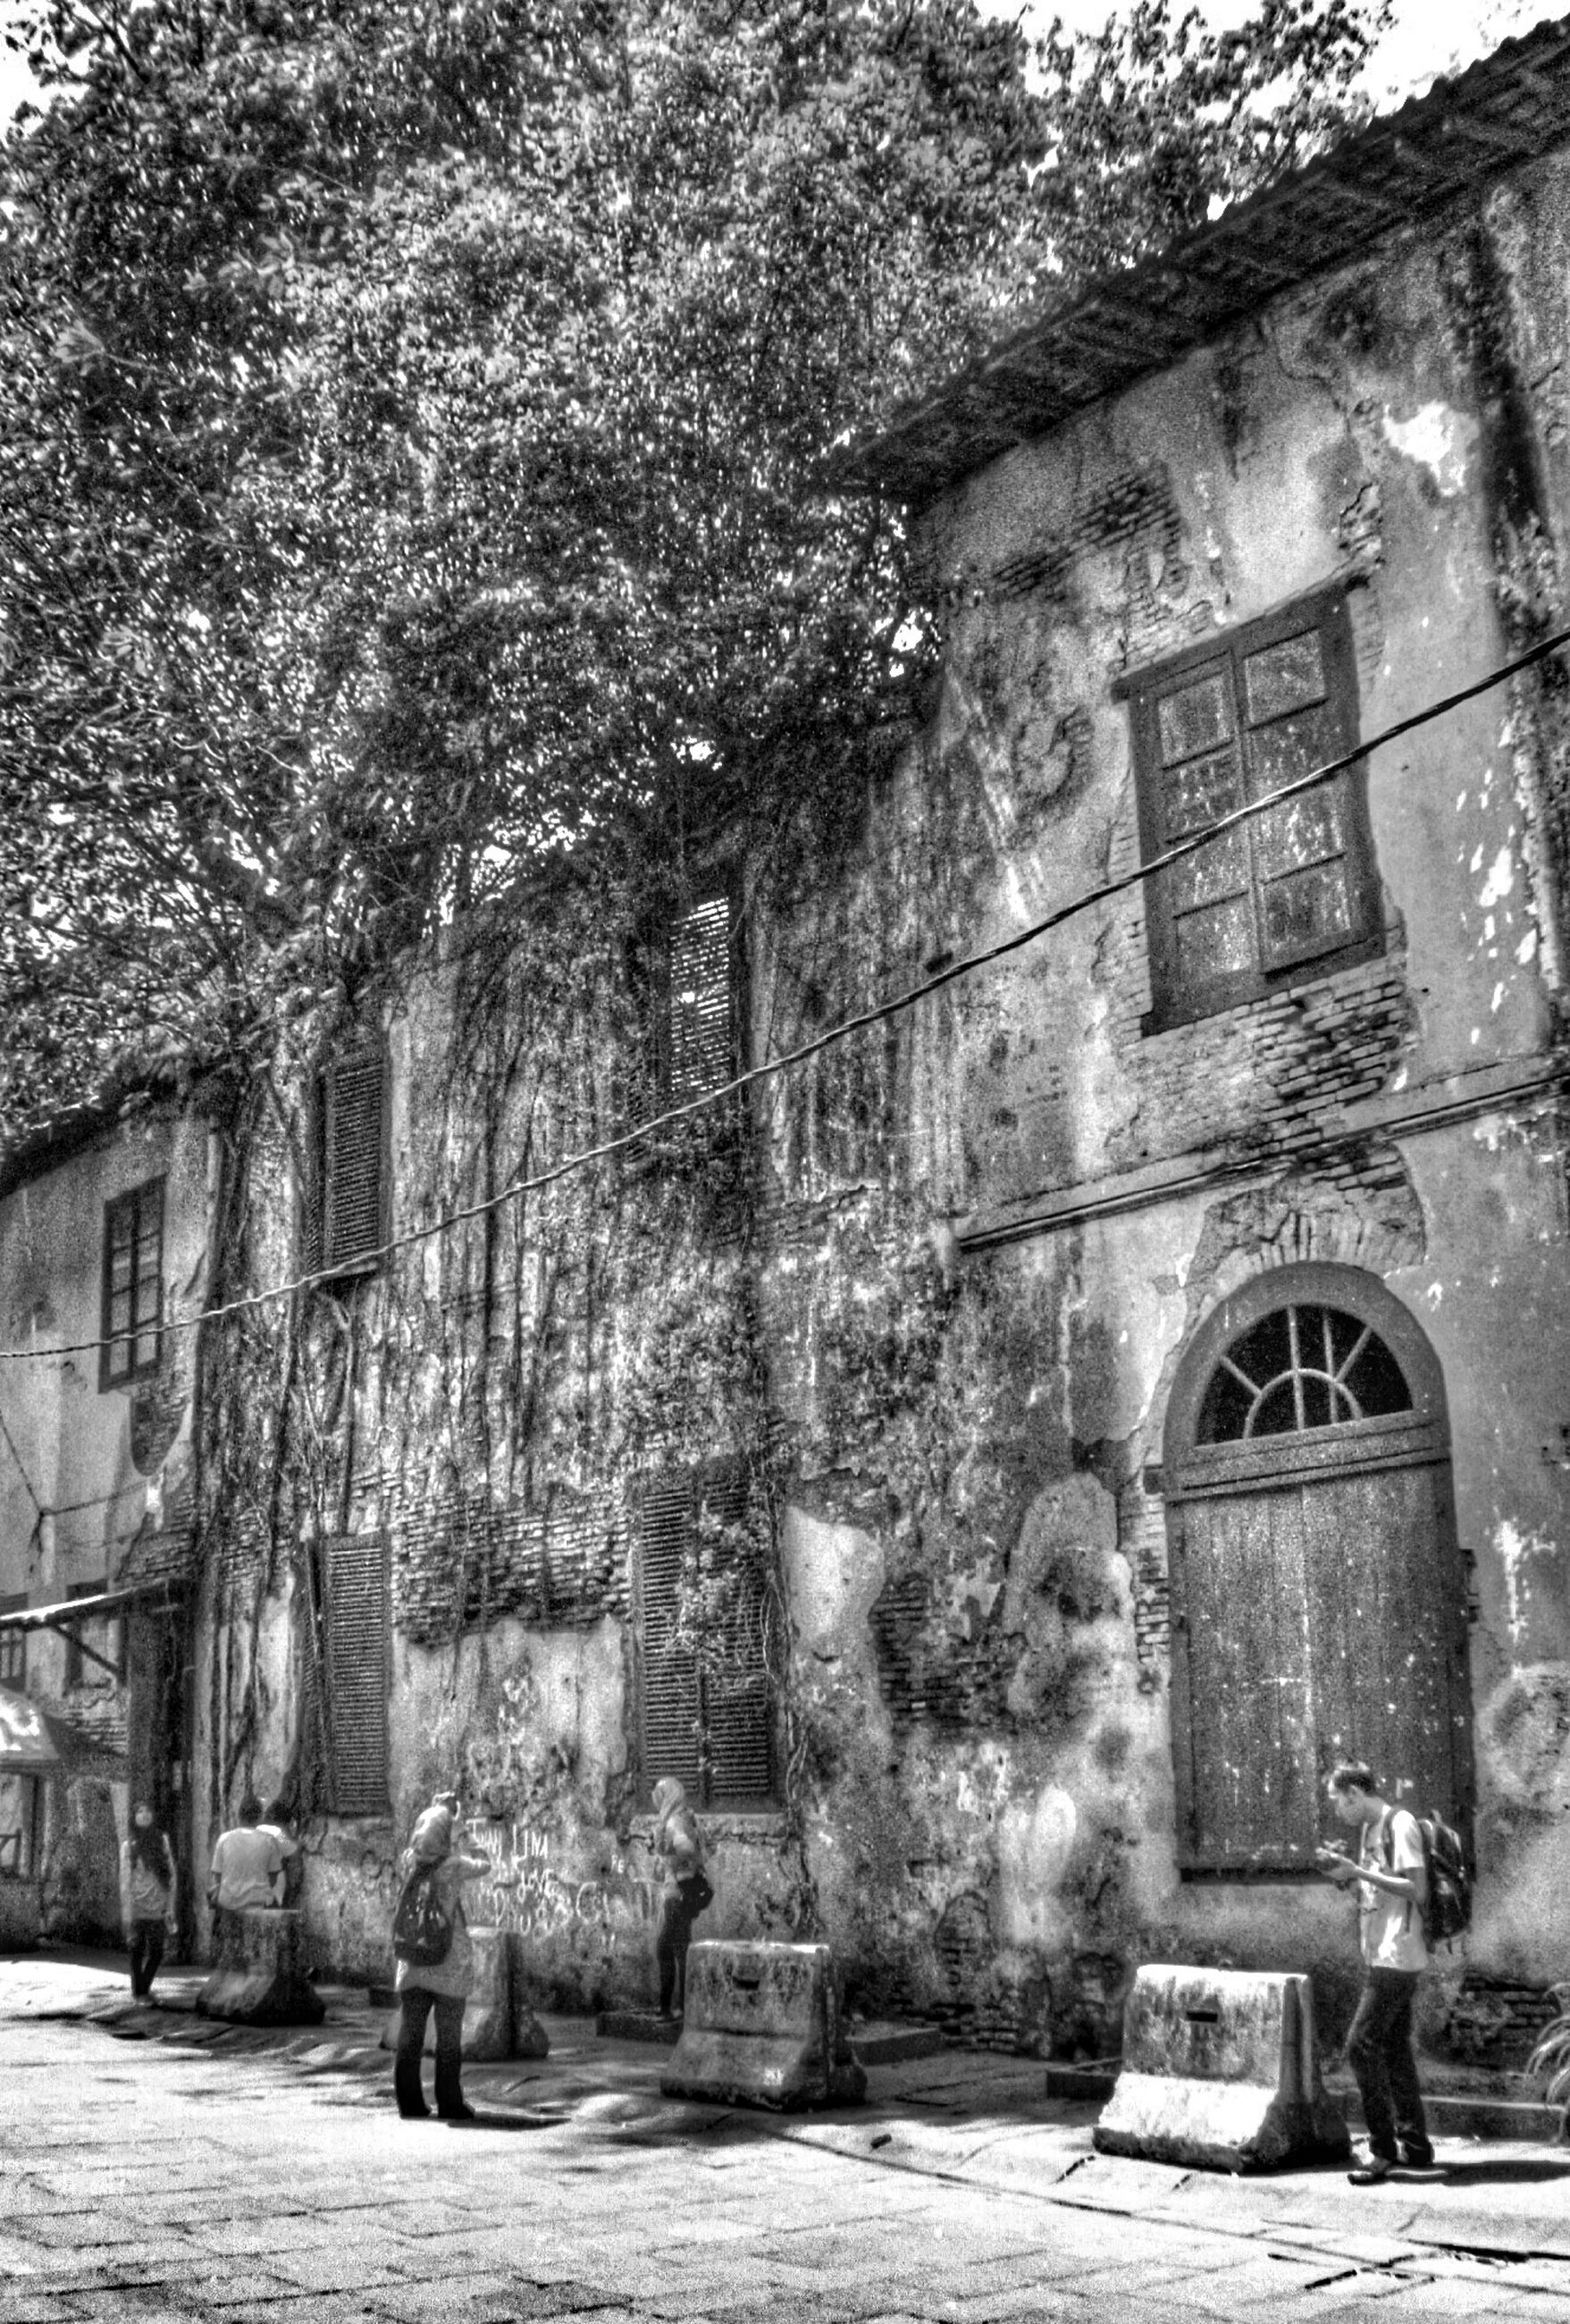 architecture, building exterior, built structure, old, entrance, wall - building feature, arch, abandoned, stone wall, outdoors, street, tree, day, house, building, door, history, brick wall, weathered, graffiti